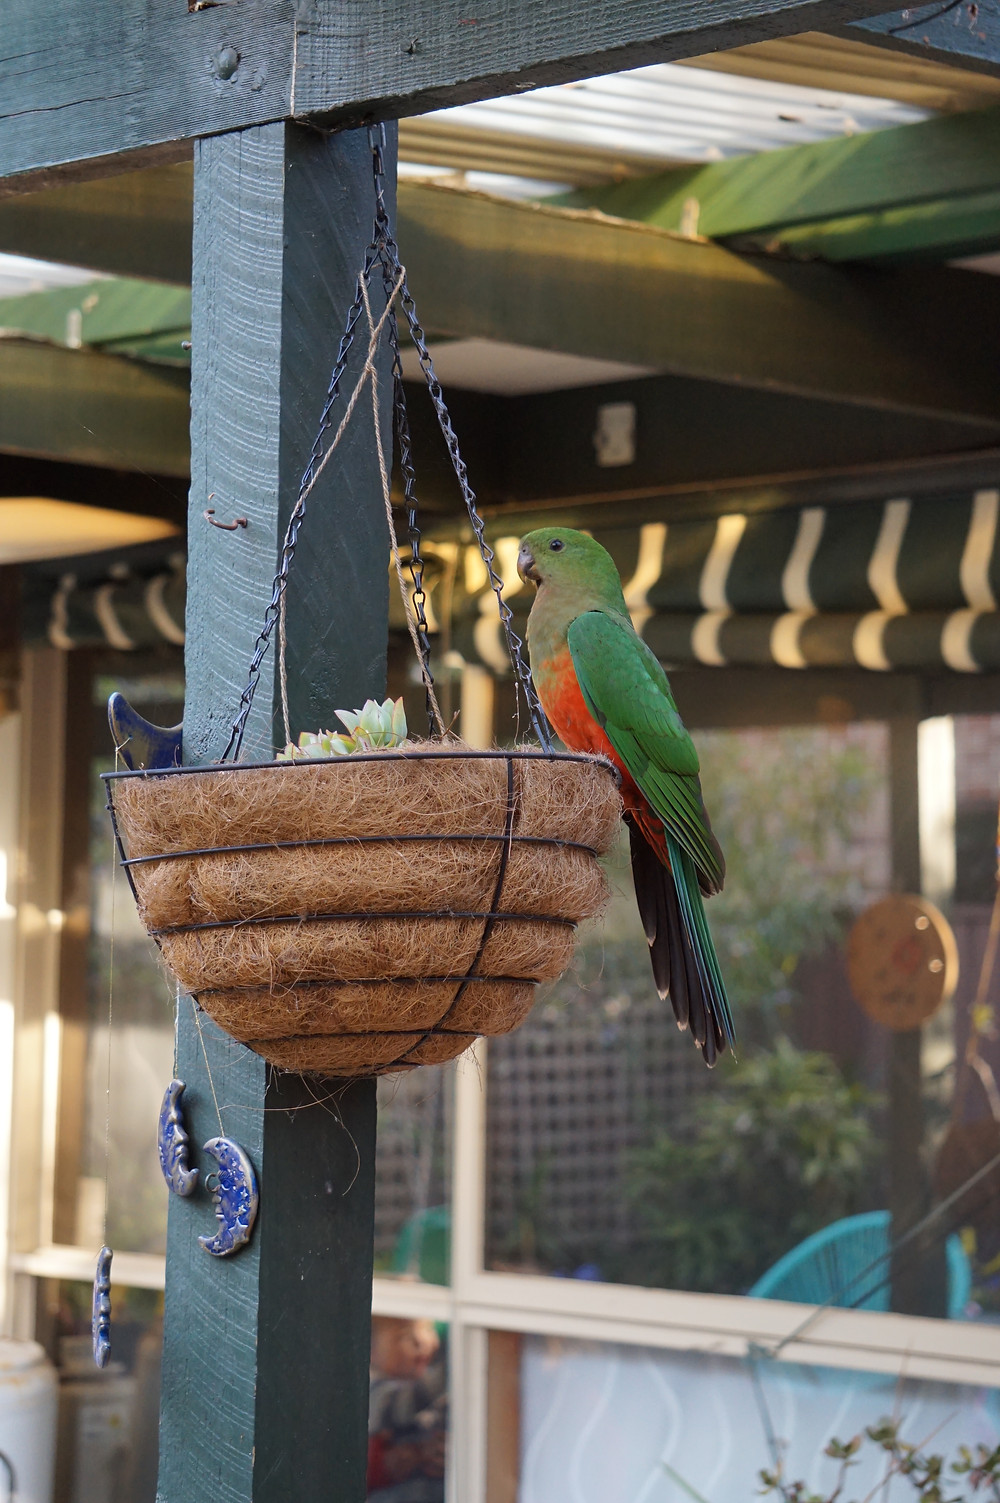 Female King Parrot on a hanging garden pot